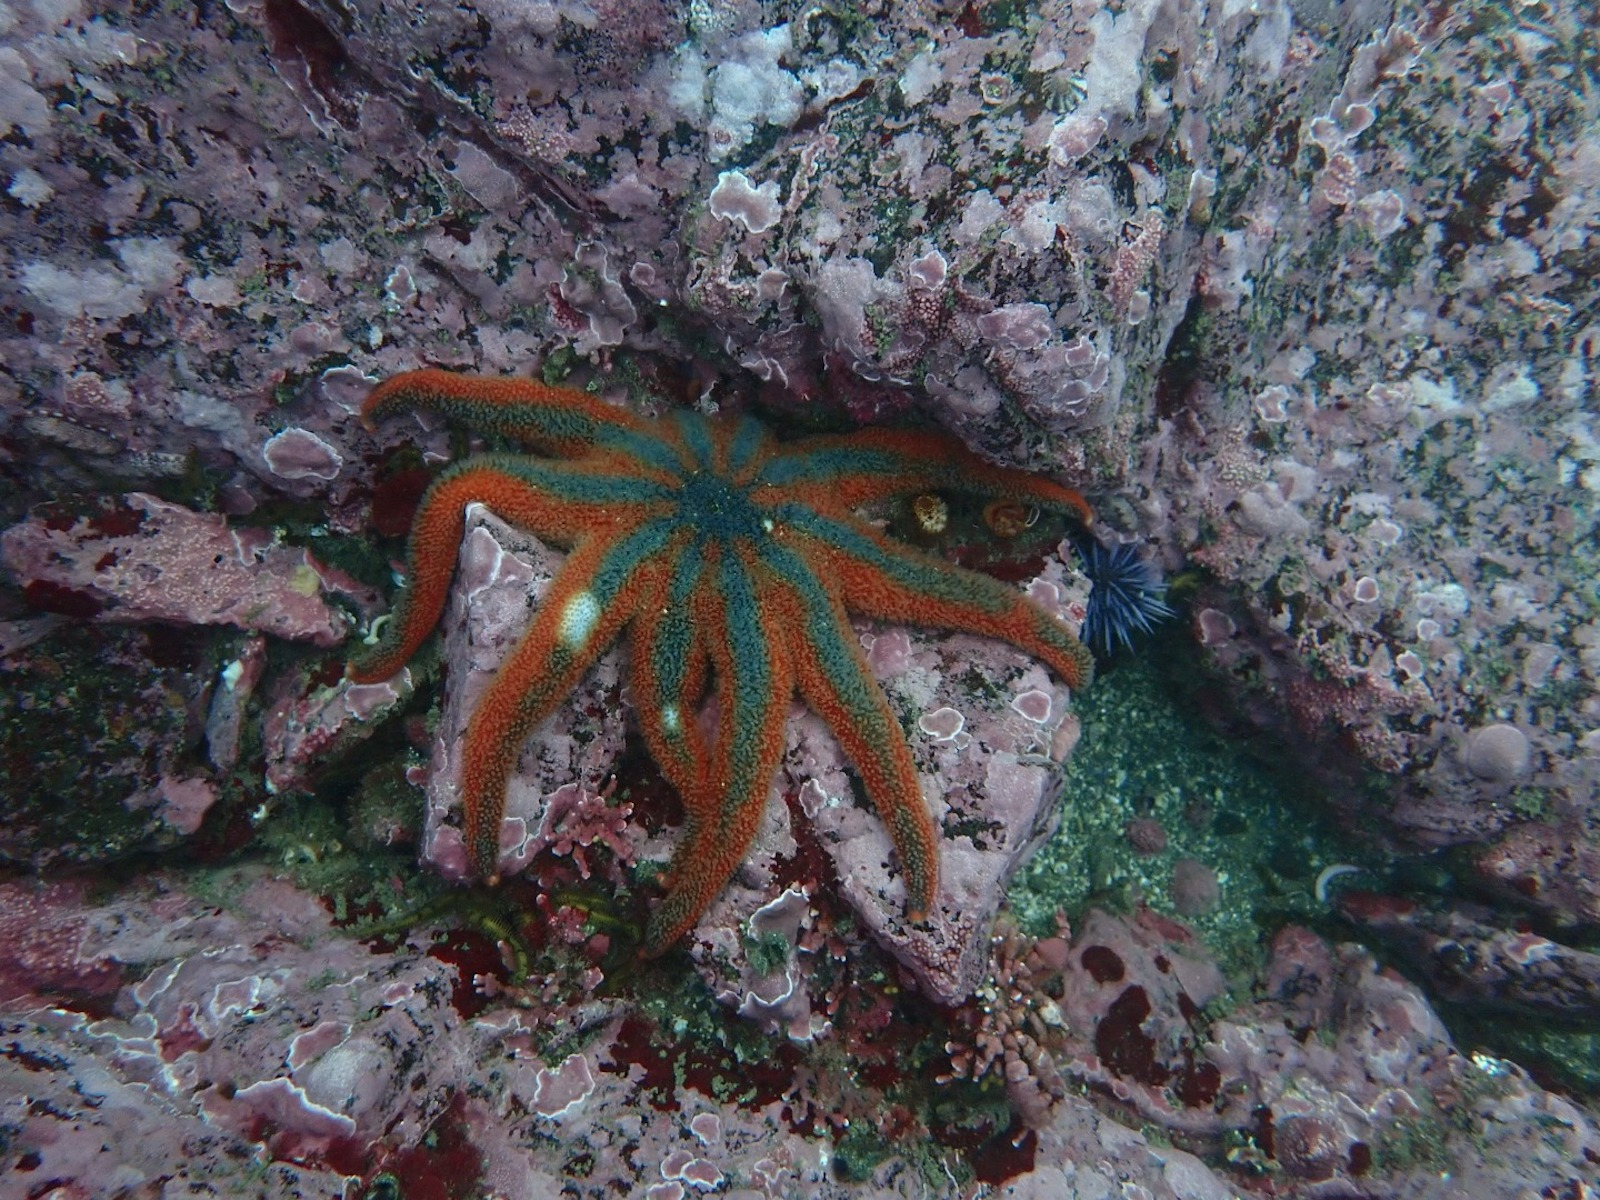 An orange and green sea star with white dots on two of its rays